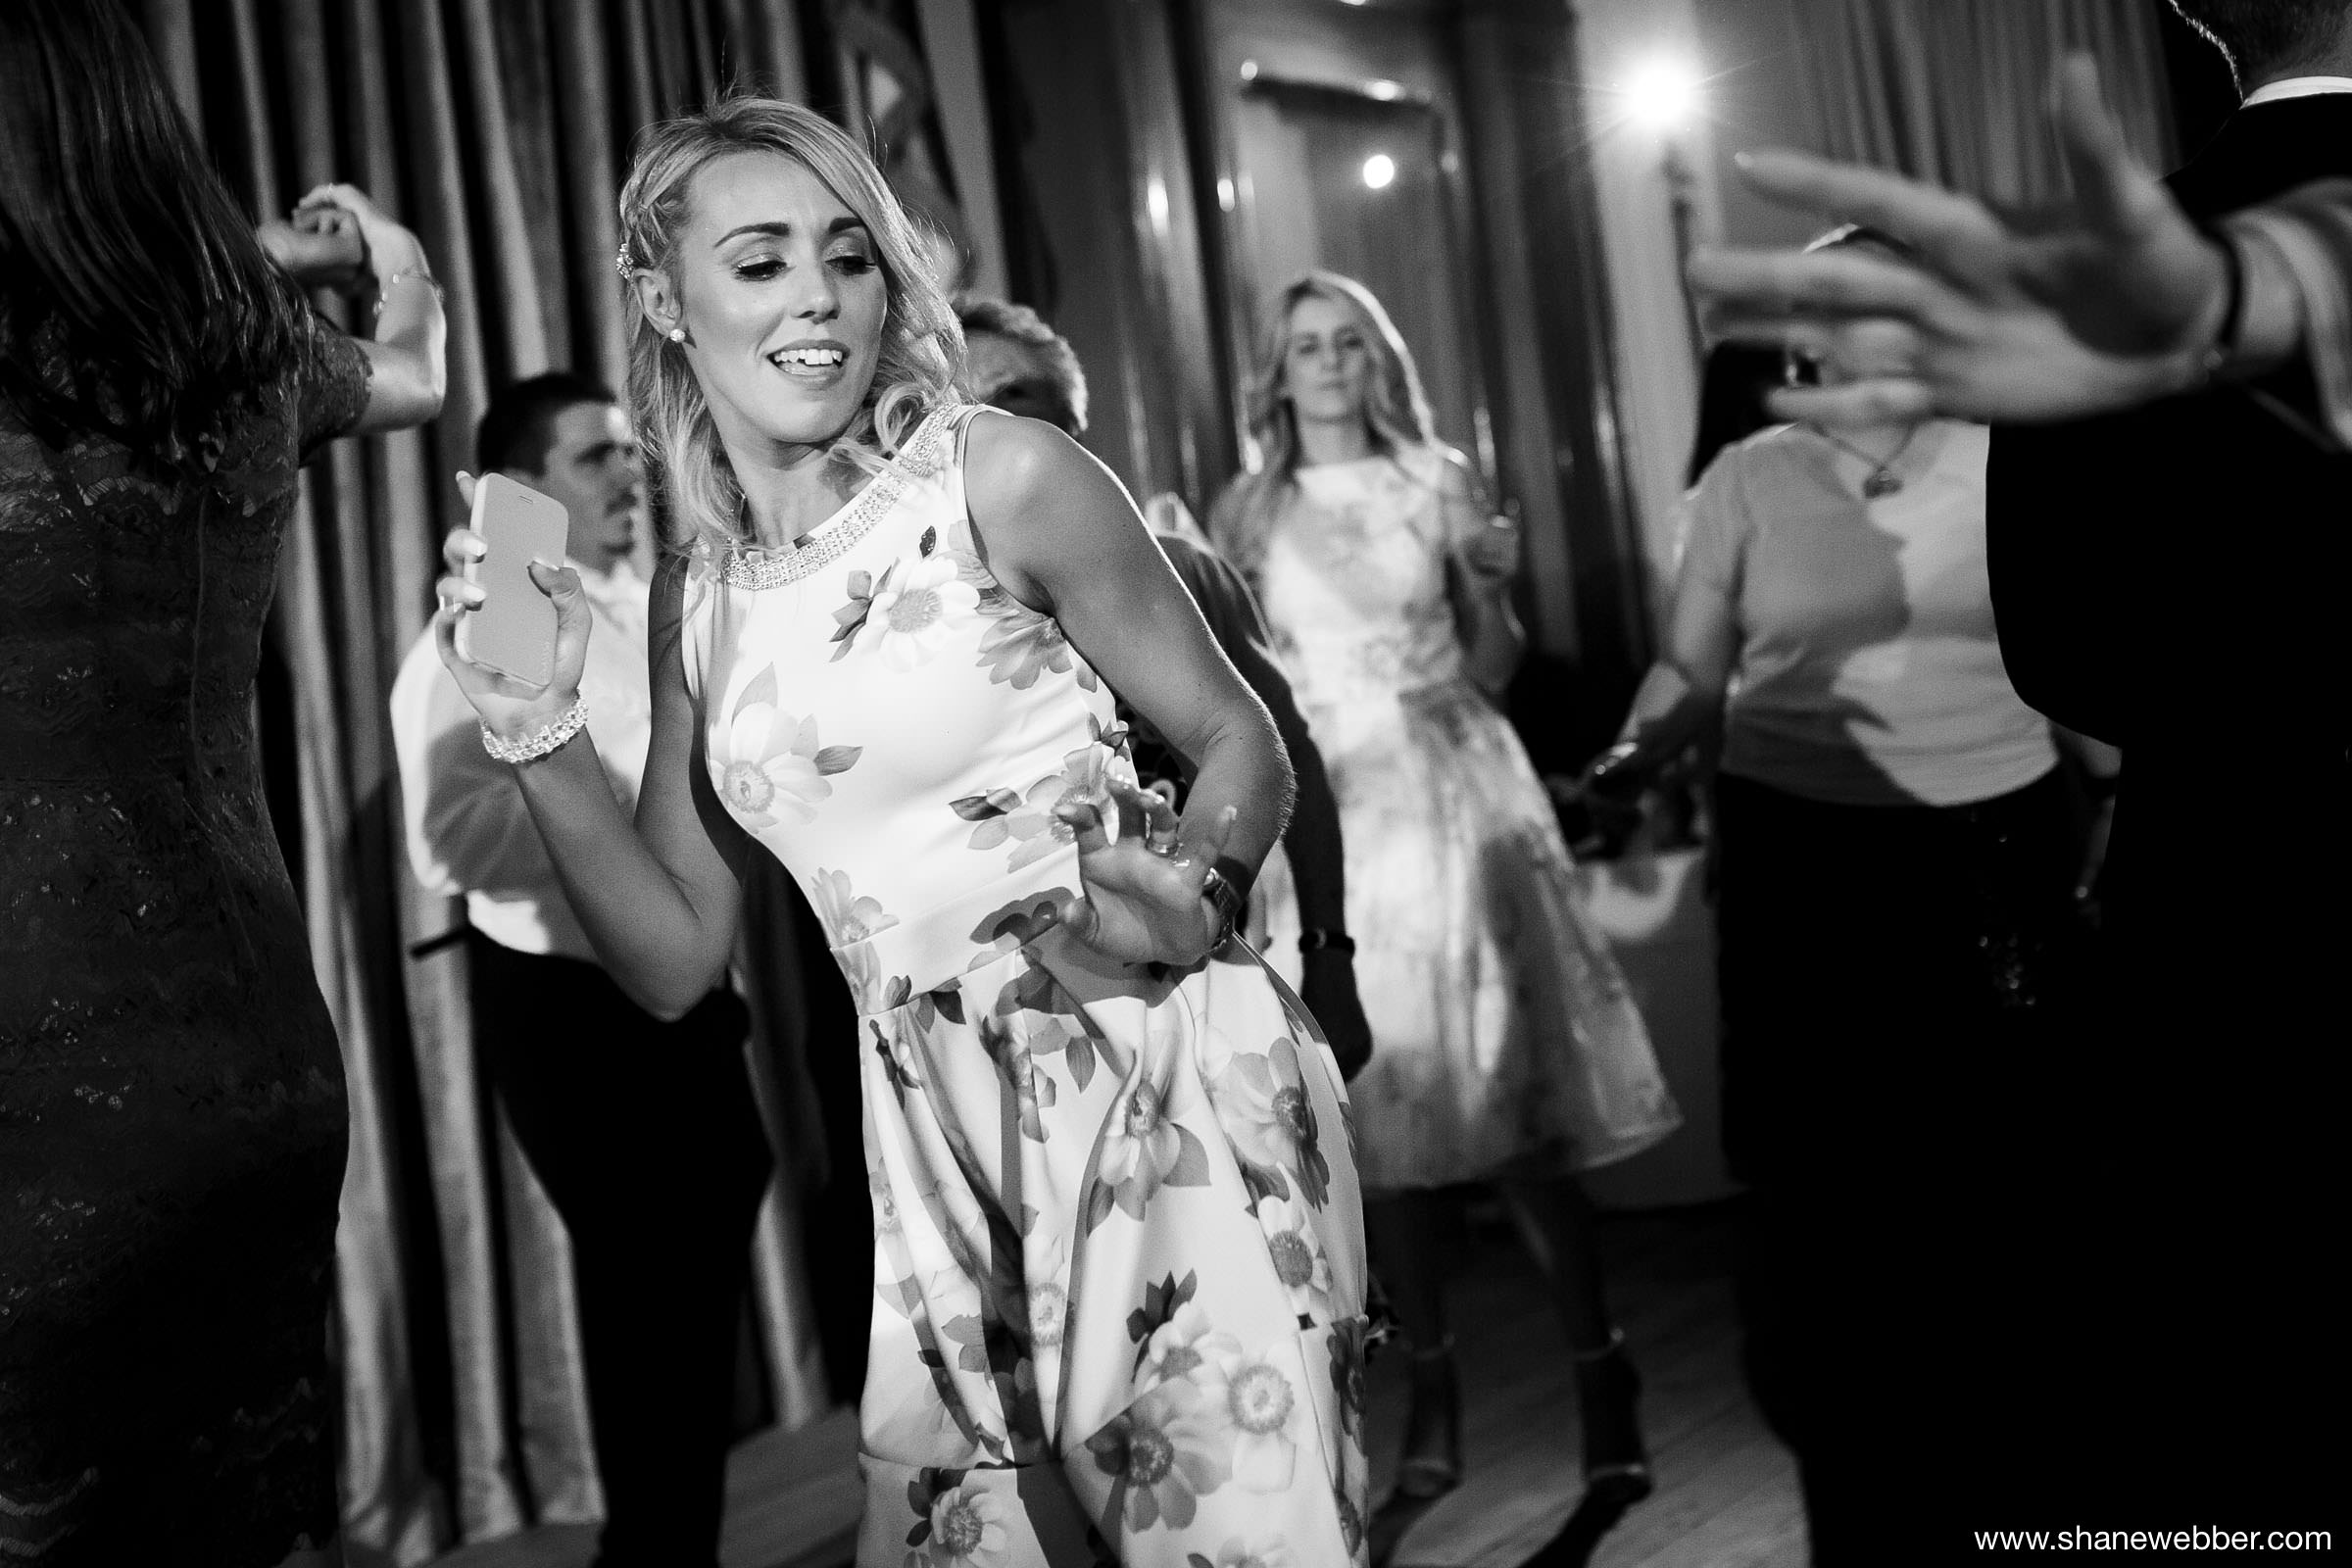 Party photos of guests dancing at Haigh Hall wedding